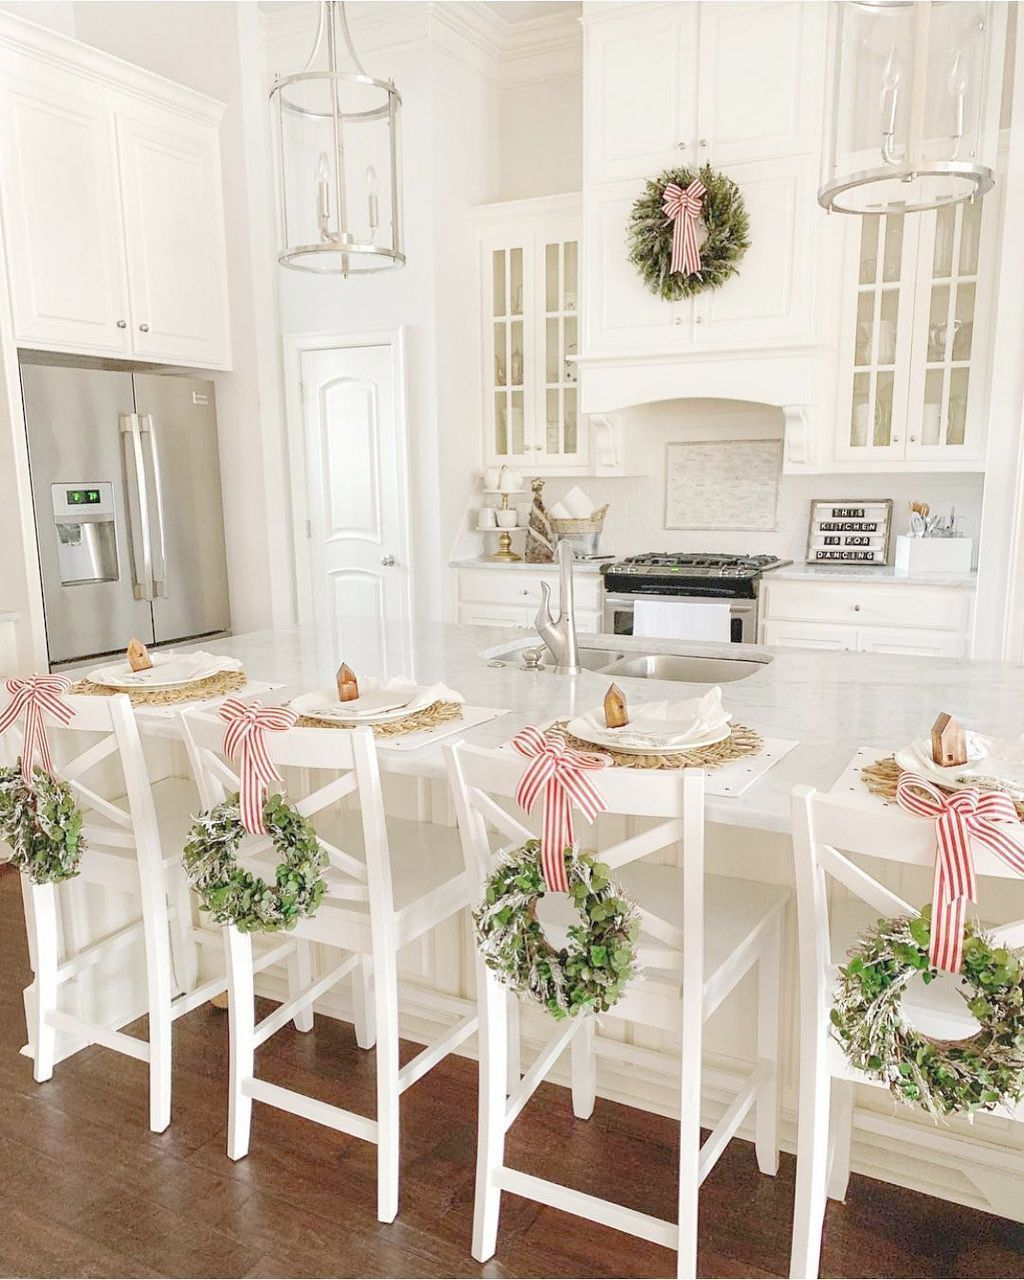 Inspiring Winter Kitchen Decor Ideas You Can Try 24